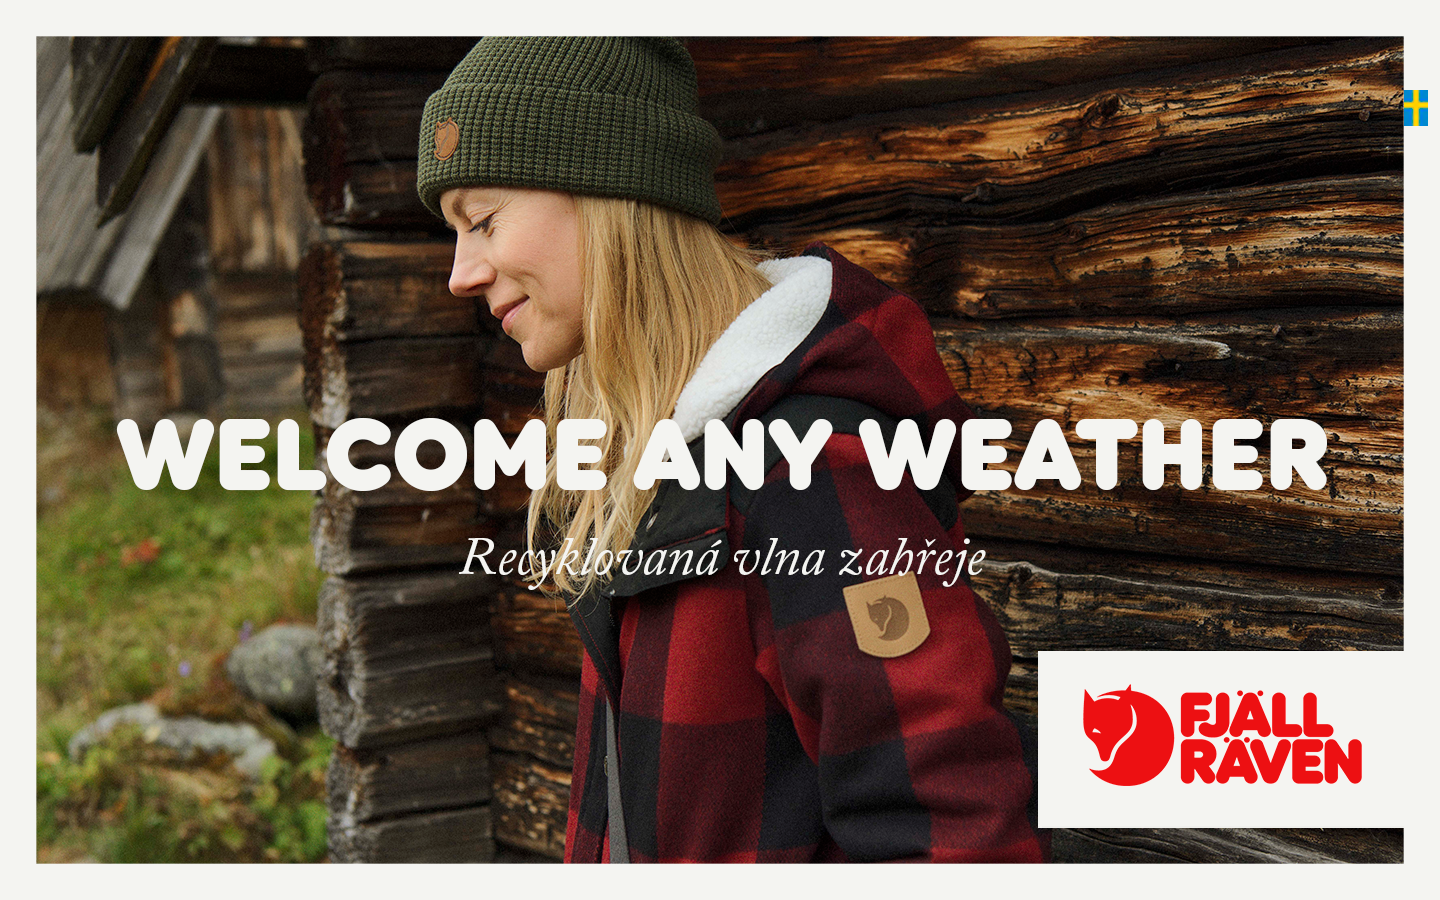 [album/Products_Model_Product/94/WELCOME_ANY_WEATHER_480x300_1.png]